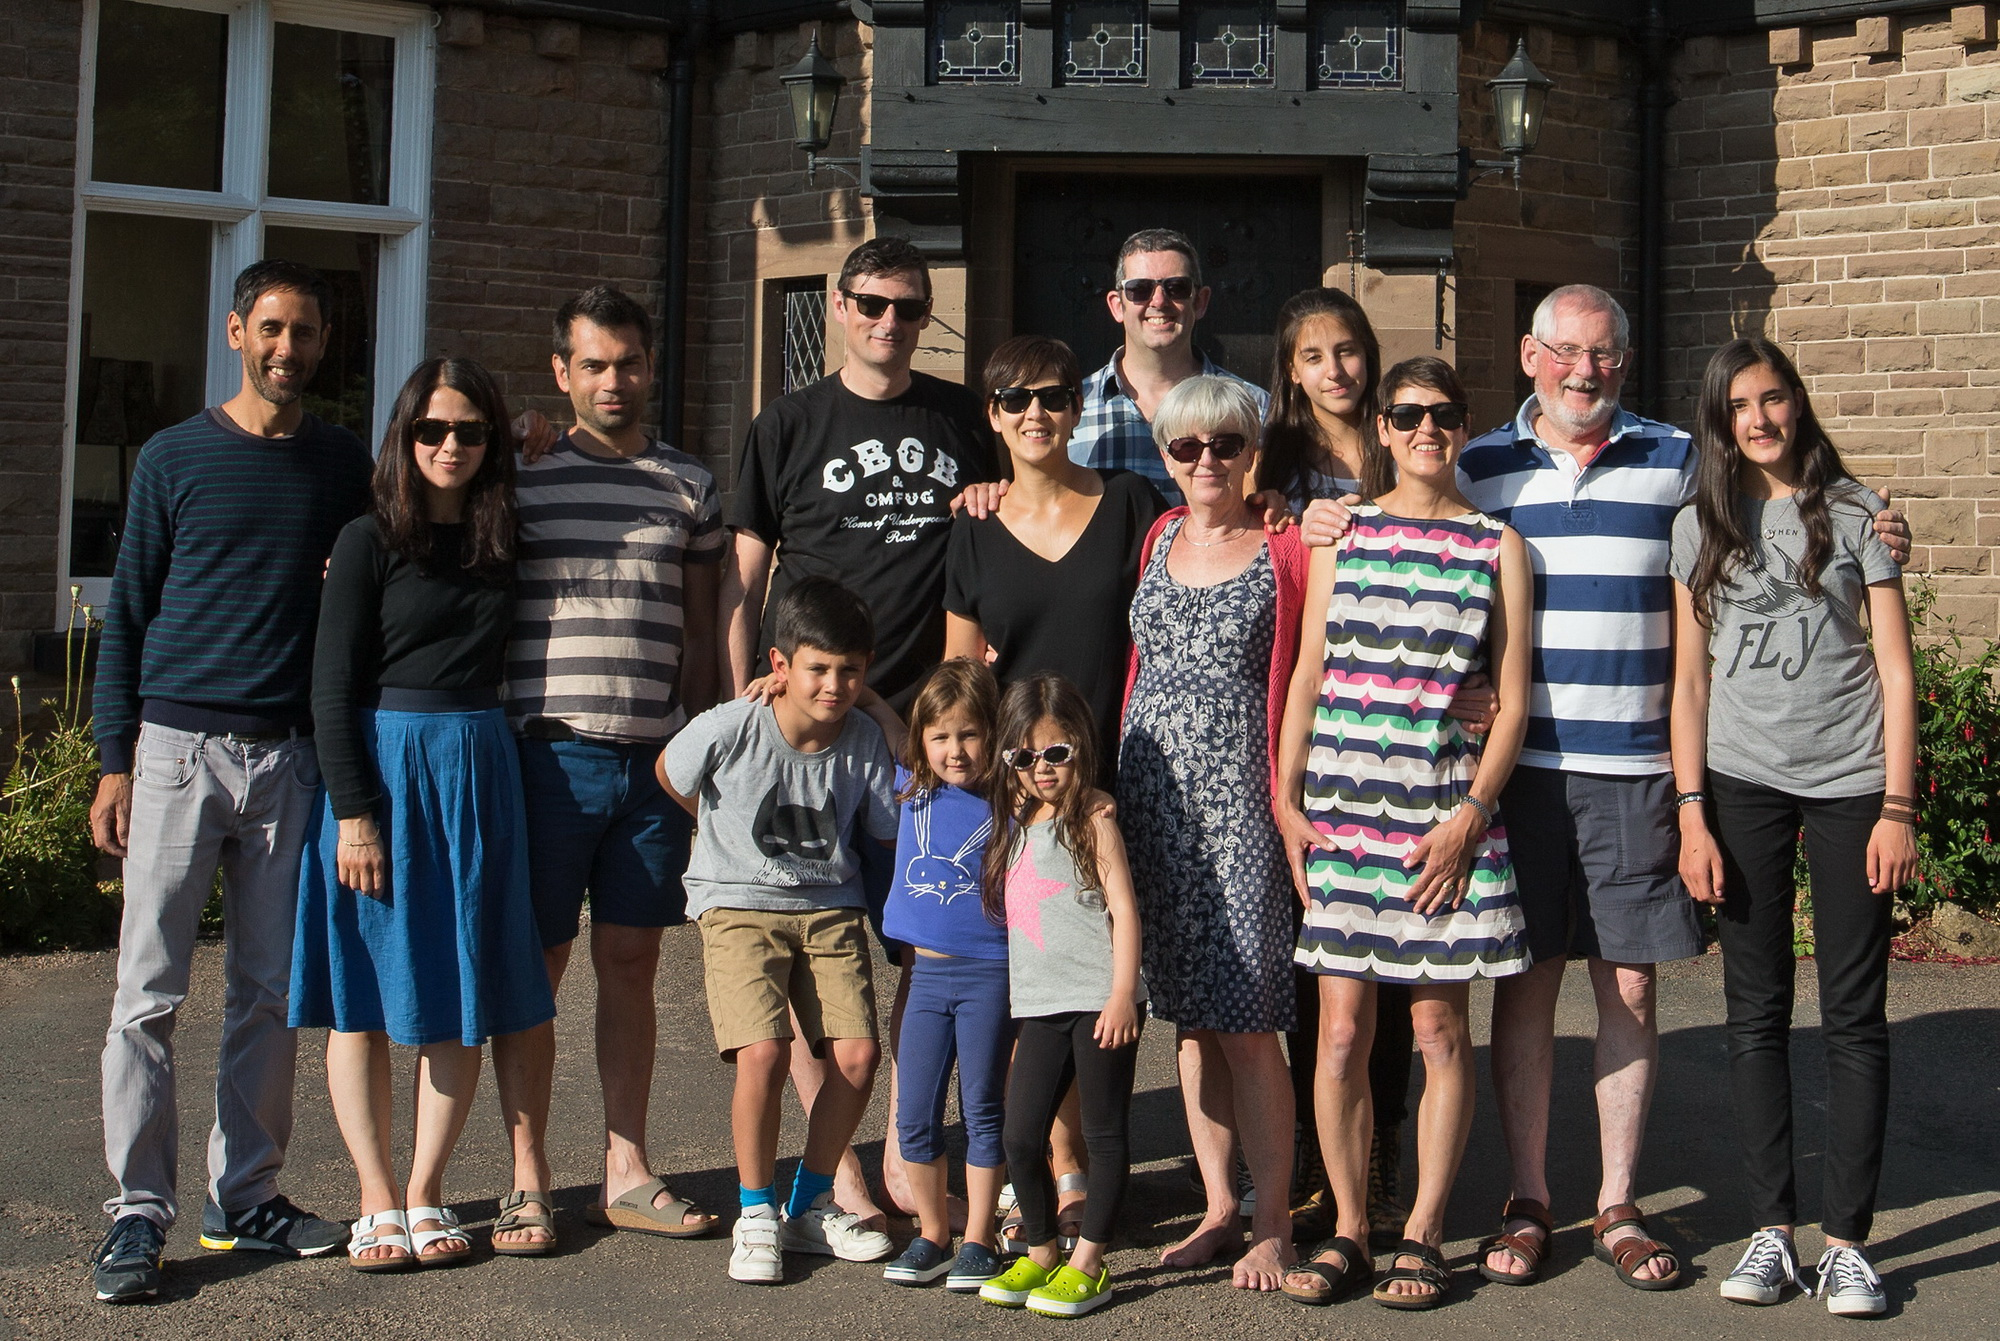 Three generations on holiday in England, July 2015. Mum couldn't be with us as she is now in a care home. Dad's younger sister, my aunty, joined our gang.